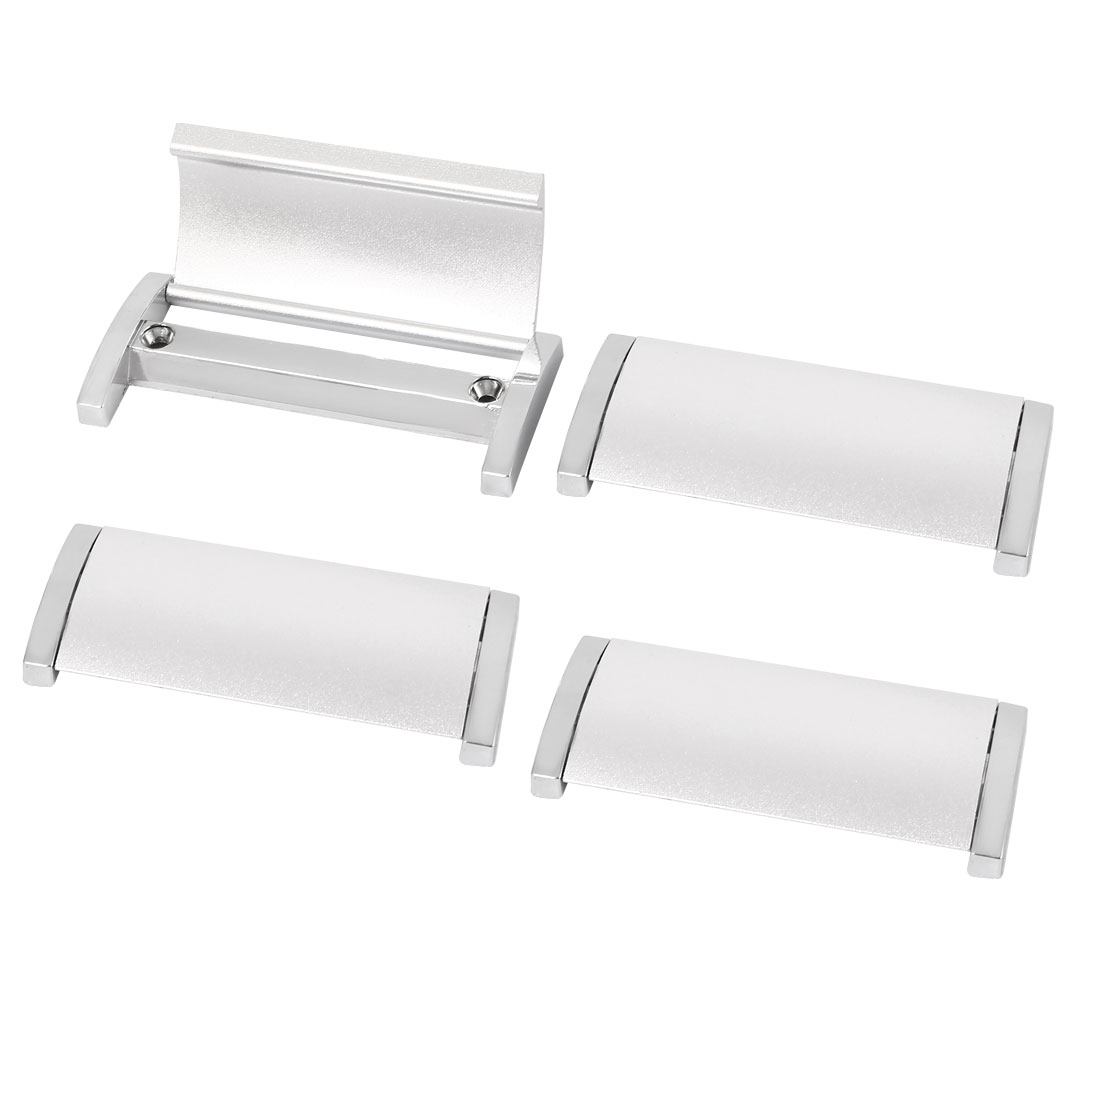 Cabinet Door Drawer Rectangle Shape Pull Handle Knob Silver Tone 102mm Long 4PCS